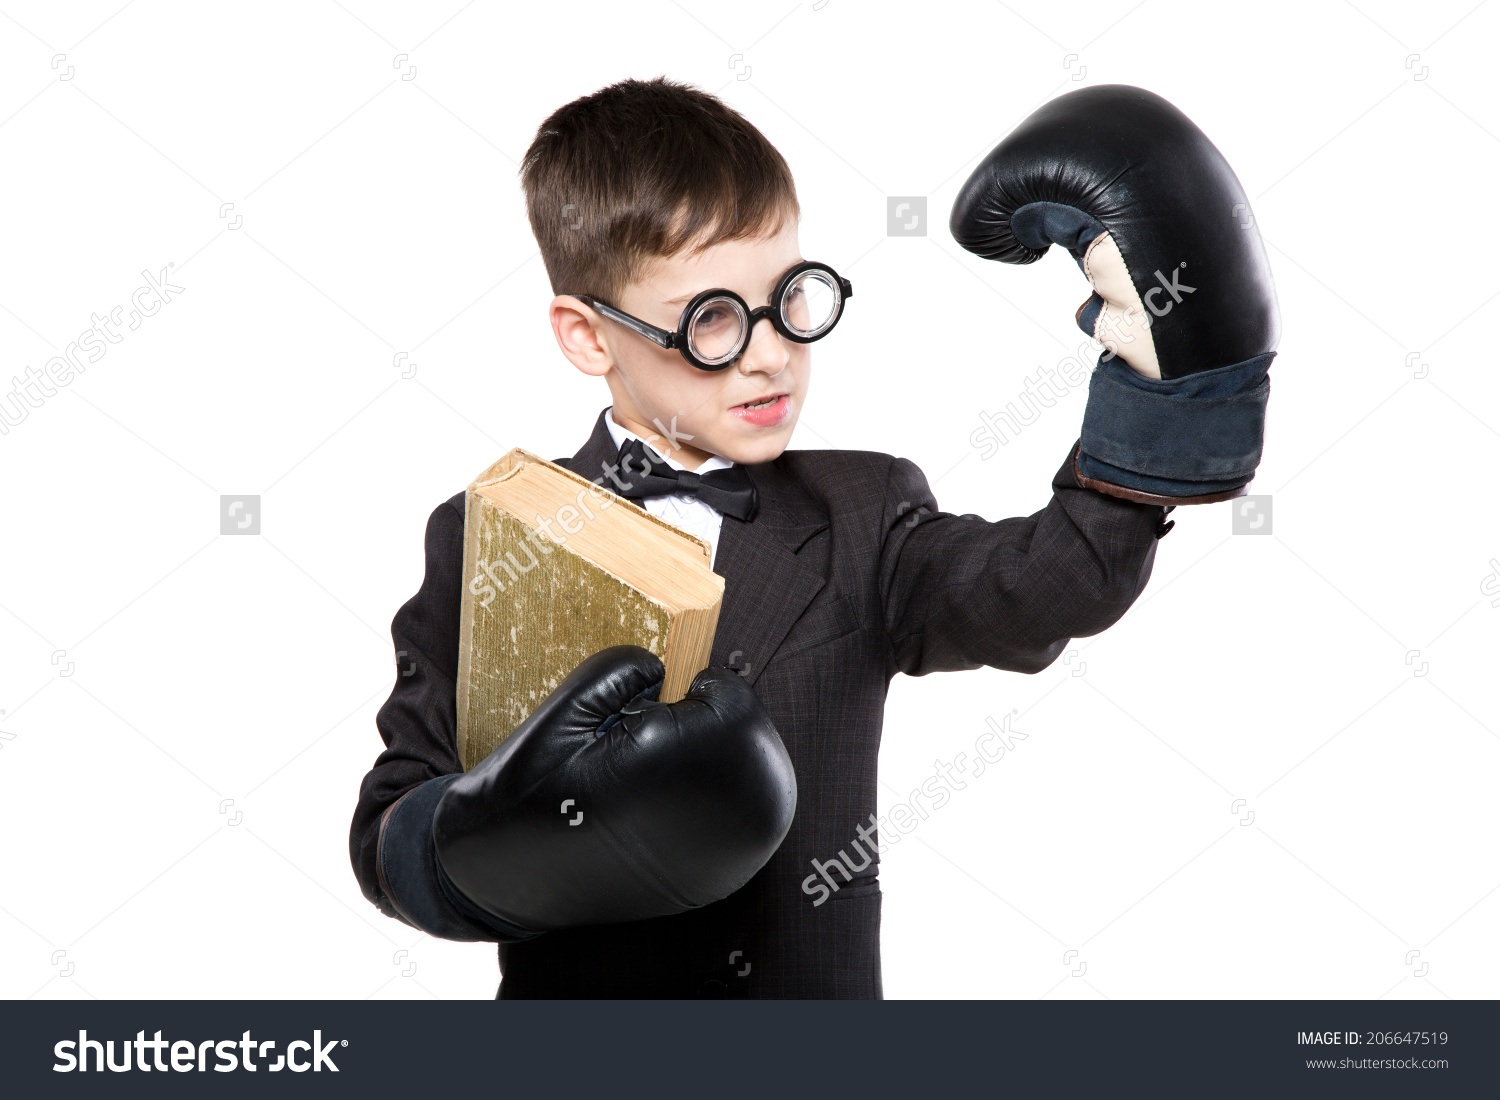 stock-photo-schoolboy-reading-a-book-in-boxing-gloves-and-suit-school-and-education-206647519